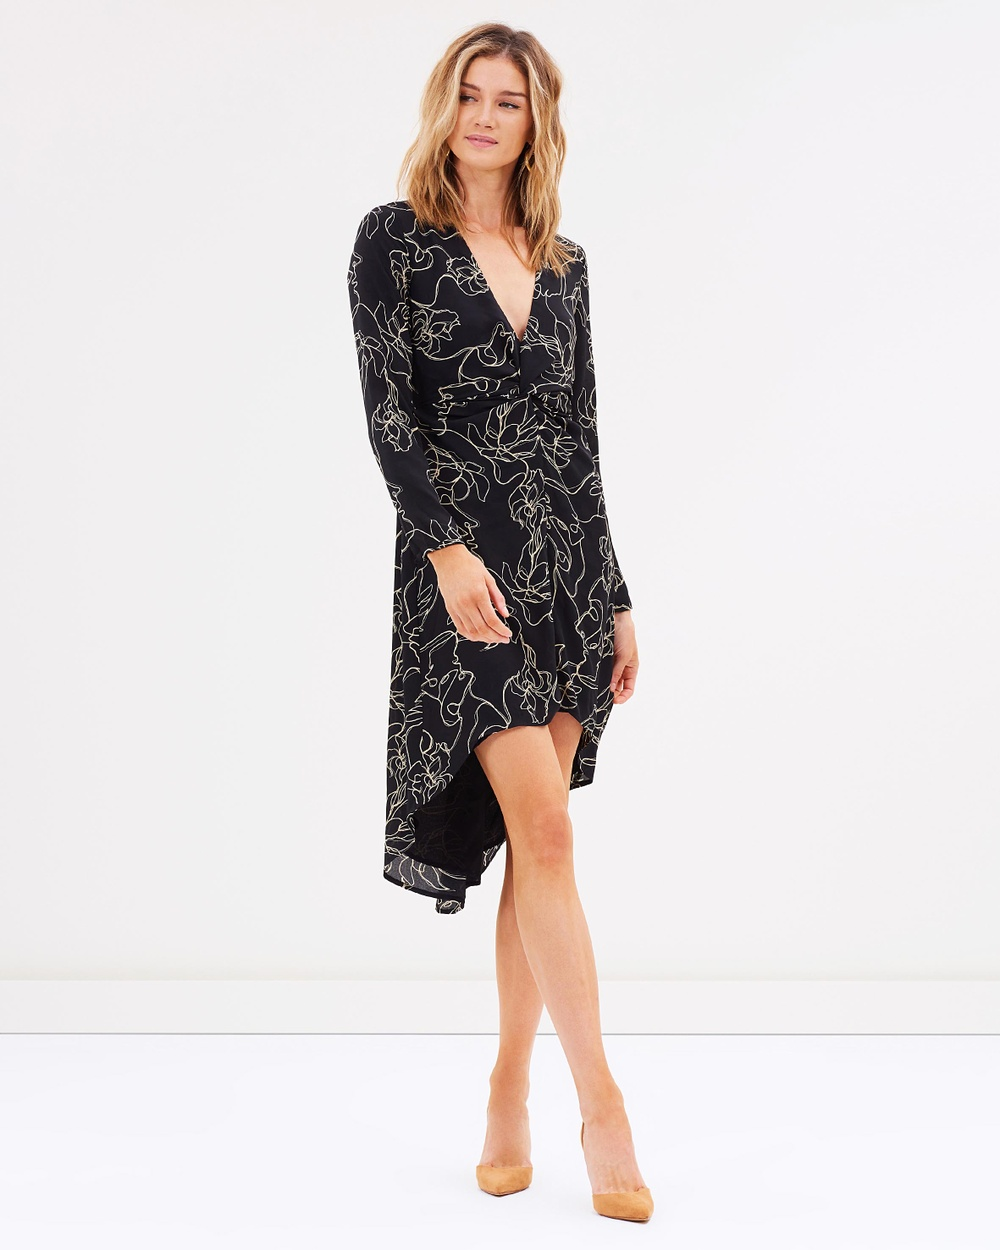 Atmos & Here ICONIC EXCLUSIVE Charlotte Knot Midi Dress Printed Dresses In Two Minds Print ICONIC EXCLUSIVE Charlotte Knot Midi Dress